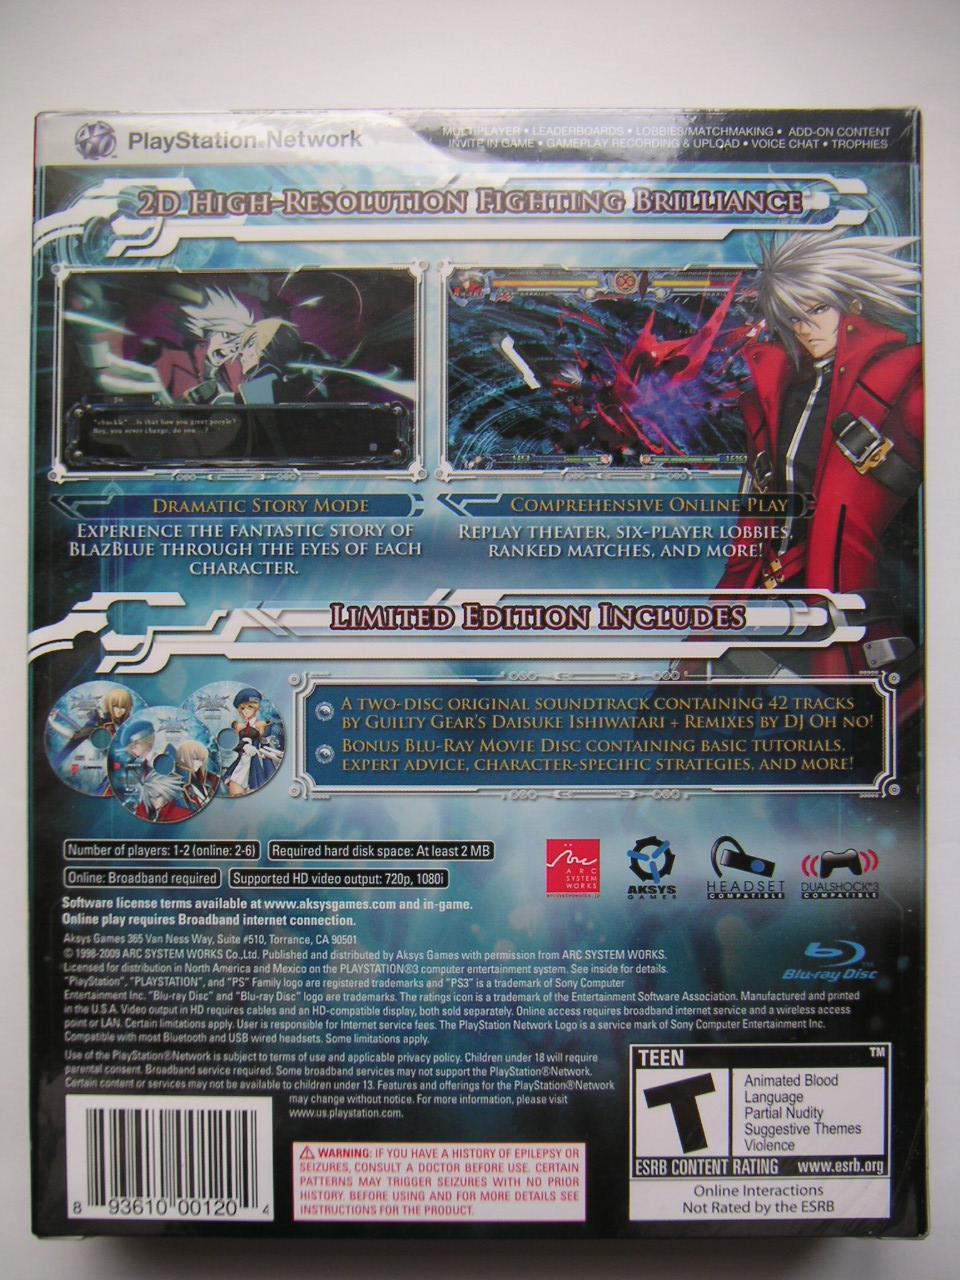 blazblue-limited-esition-02.jpg